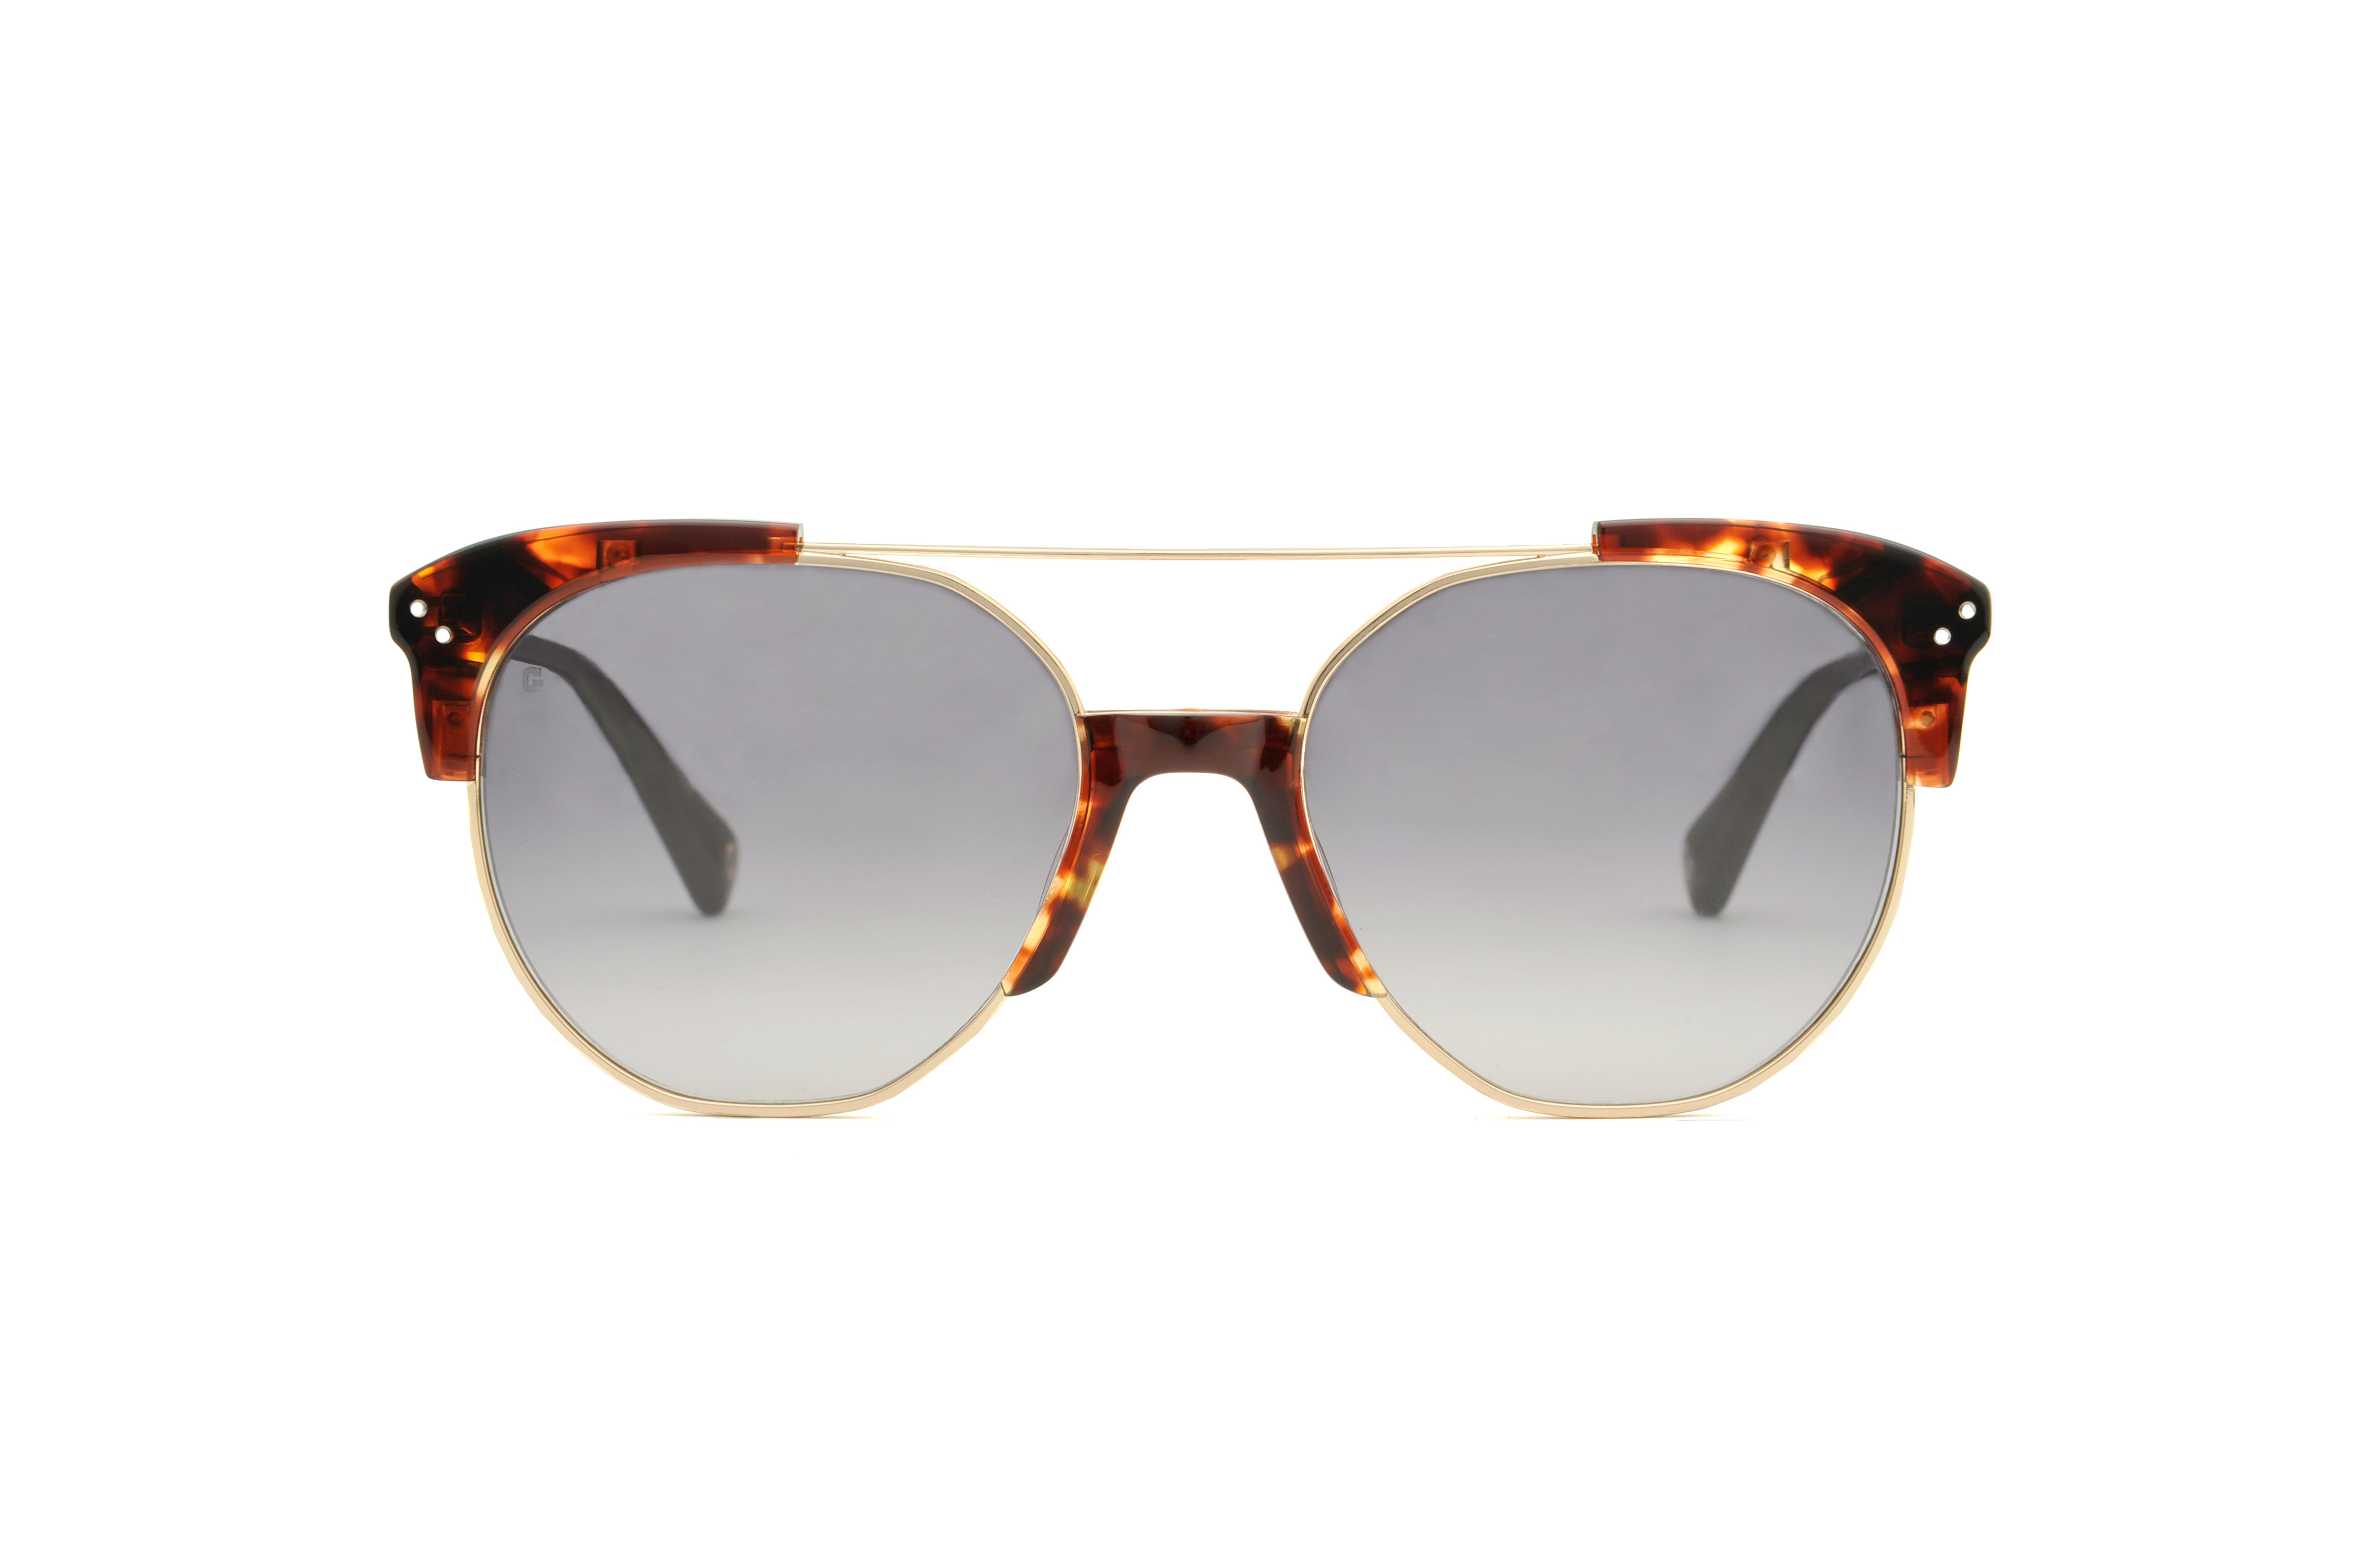 Brixton acetate/metal aviator tortoise sunglasses by GIGI Studios